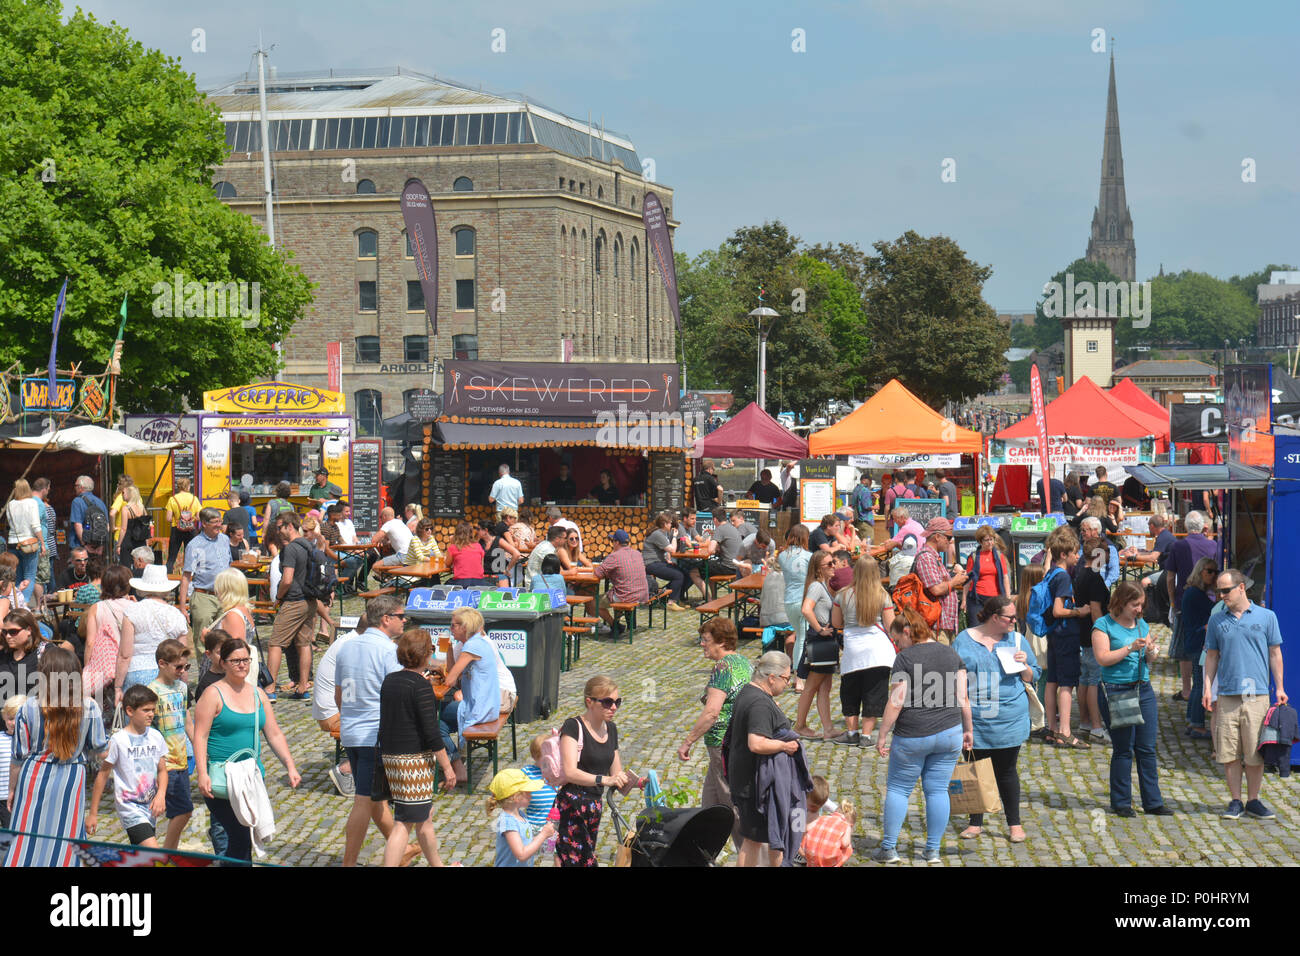 Bristol, UK, 9 June 2018. UK Weather, On a hot and humid day in Bristol people are seen enjoying themselves at the Festival of Nature. Robert Timoney/Alamy/Live/News - Stock Image